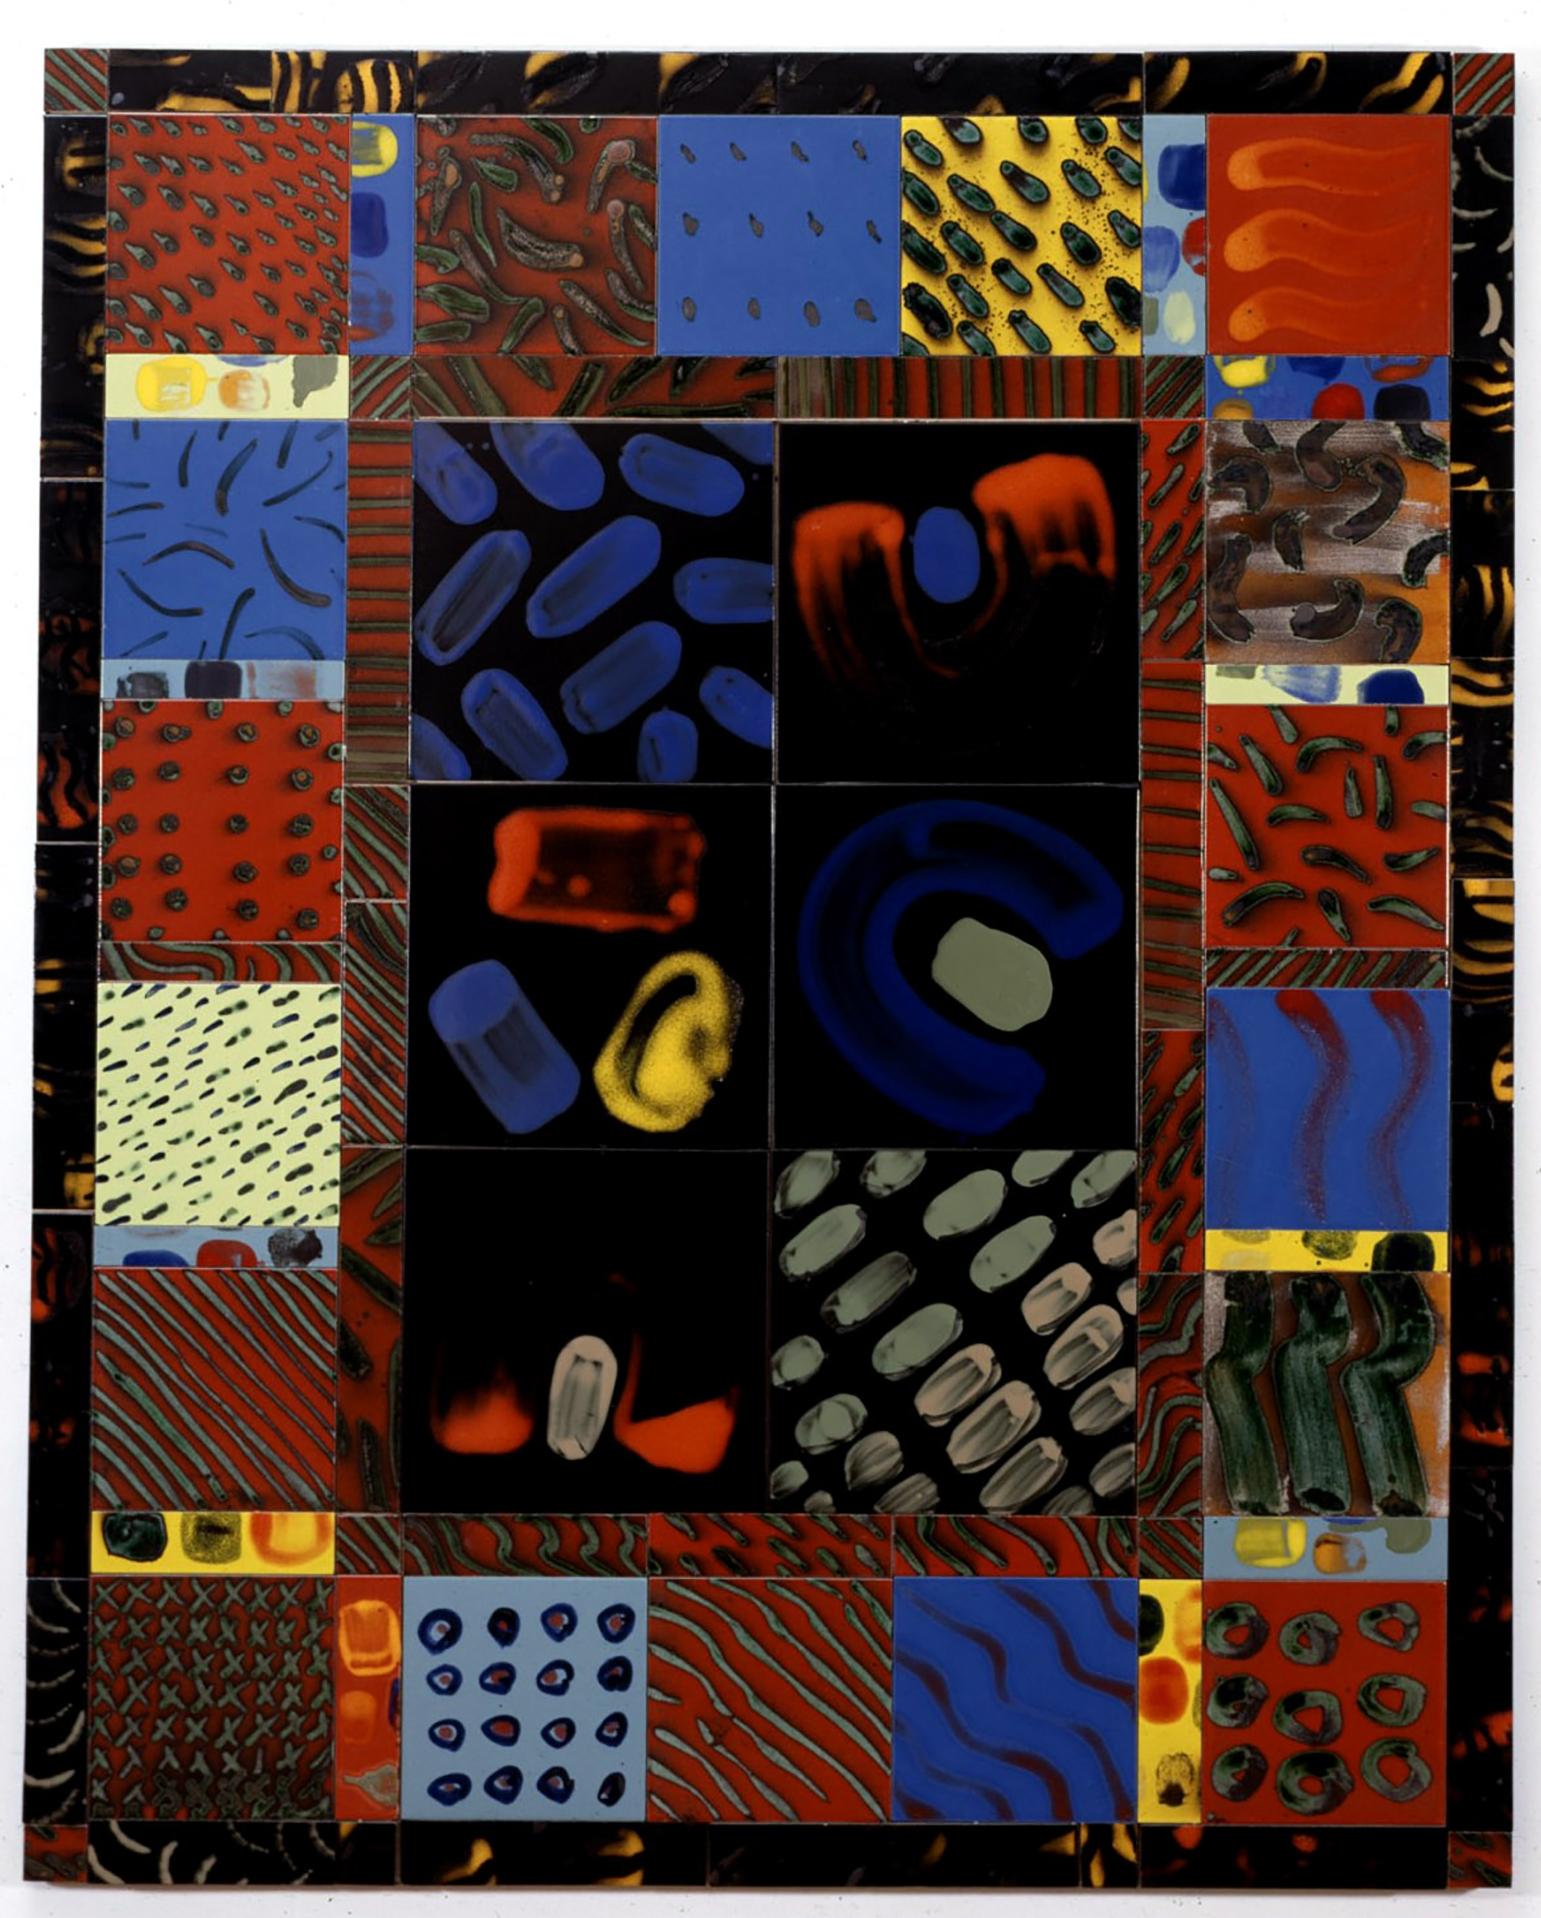 NEGEV IMPRINT 1995 Glazed and ceramic tiles 68 x 54 inches